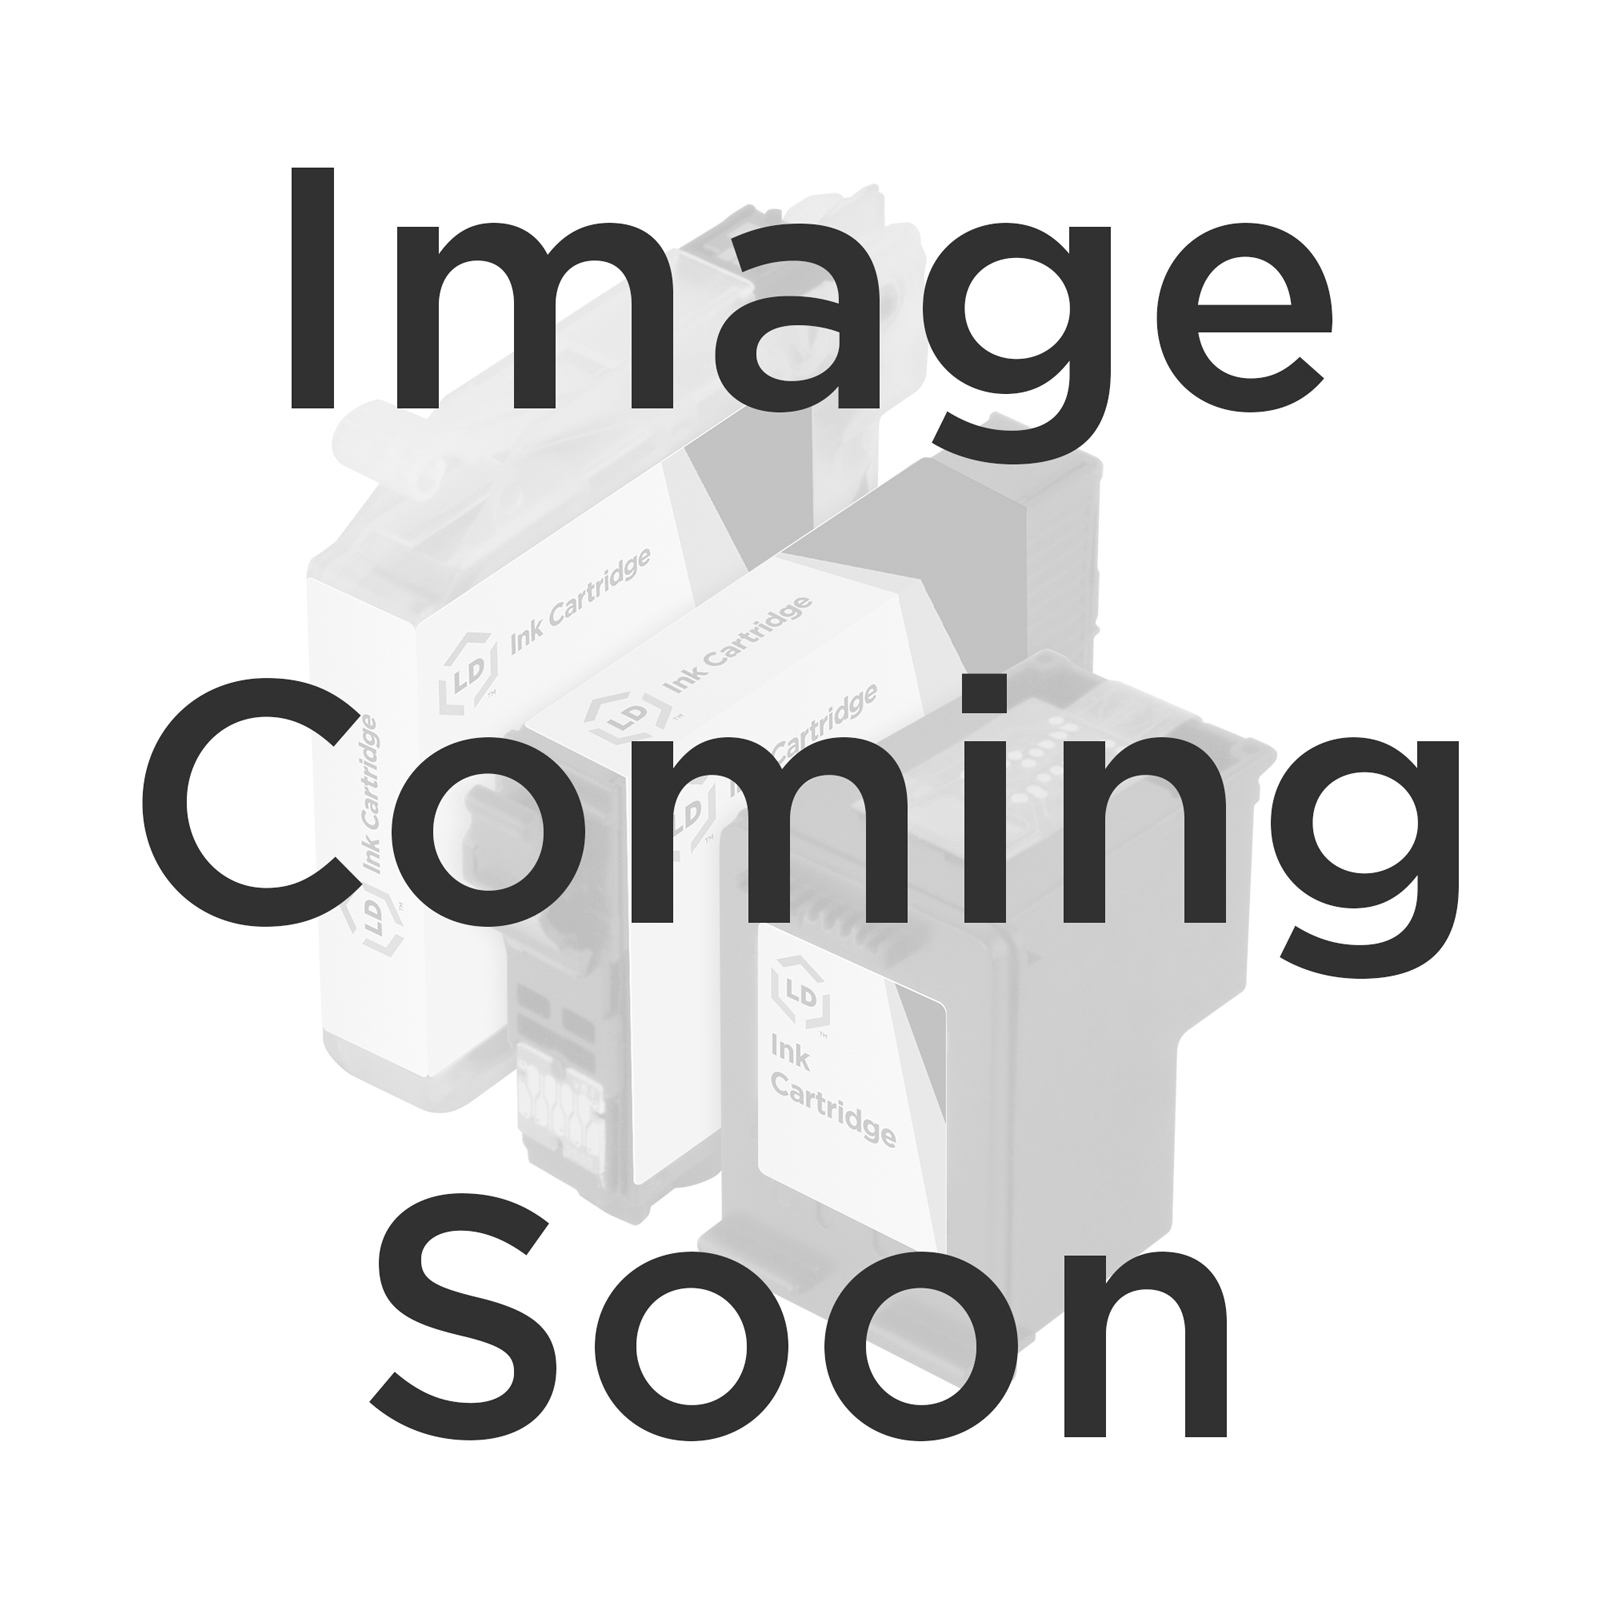 Shell Strategies for Developing Higher-Order Thinking Skills: Grades 3-5 Education Printed/Electronic Book by Wendy Conklin